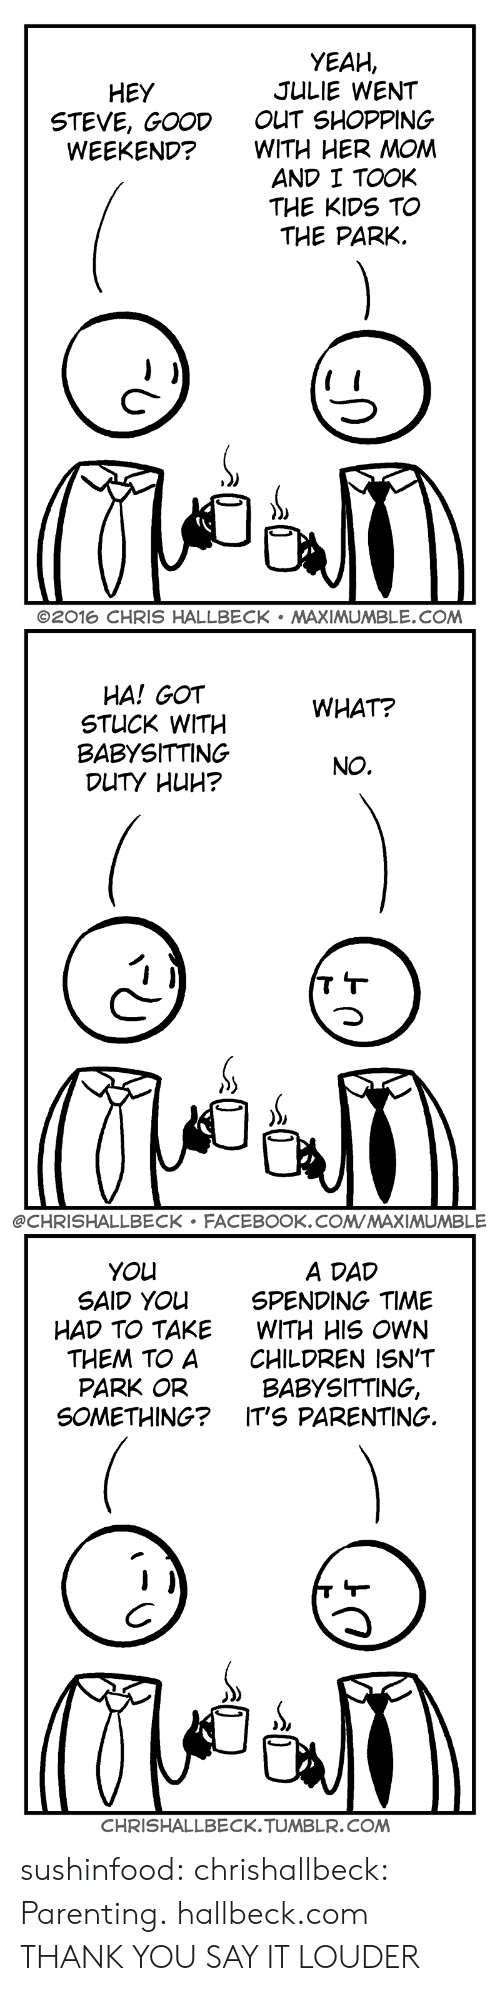 Children, Dad, and Facebook: YEAH,  JULIE WENT  OUT SHOPPING  WITH HER MOM  AND I TOOK  THE KIDS TO  THE PARK.  HEY  STEVE, GOOD  WEEKEND?  C-  ©2016 CHRIS HALLBECK . MAXIMUMBLE.COM   HA! GOT  STUCK WITH  BABYSITTING  WHAT?  NO.  @CHRISHALLBECK FACEBOOK.COMMAXIMUMBLE   A DAD  SPENDING TIME  WITH HIS OWN  CHILDREN ISN'T  BABYSITTING,  YOu  SAID YOu  HAD TO TAKE  THEM TO A  PARK OR  SOMETHING? IT'S PARENTING.  CHRISHALLBECK.TUMBLR.COM sushinfood: chrishallbeck:  Parenting. hallbeck.com  THANK YOU   SAY IT LOUDER